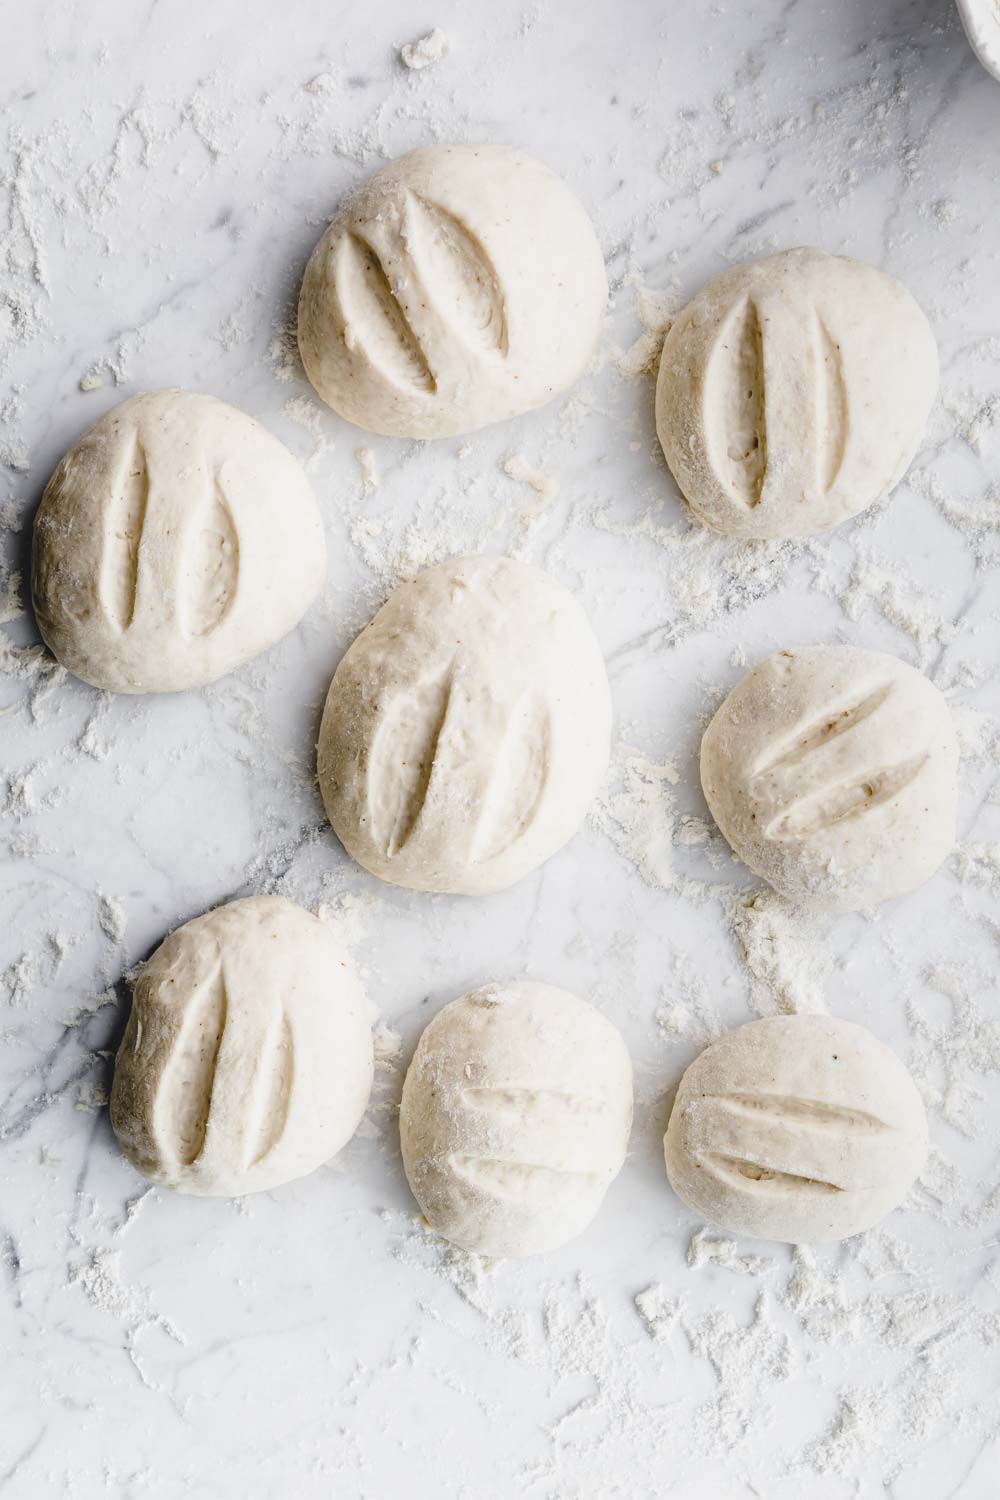 eight round dinner rolls dough on a white backdrop with flour with two cuts in each dinner roll